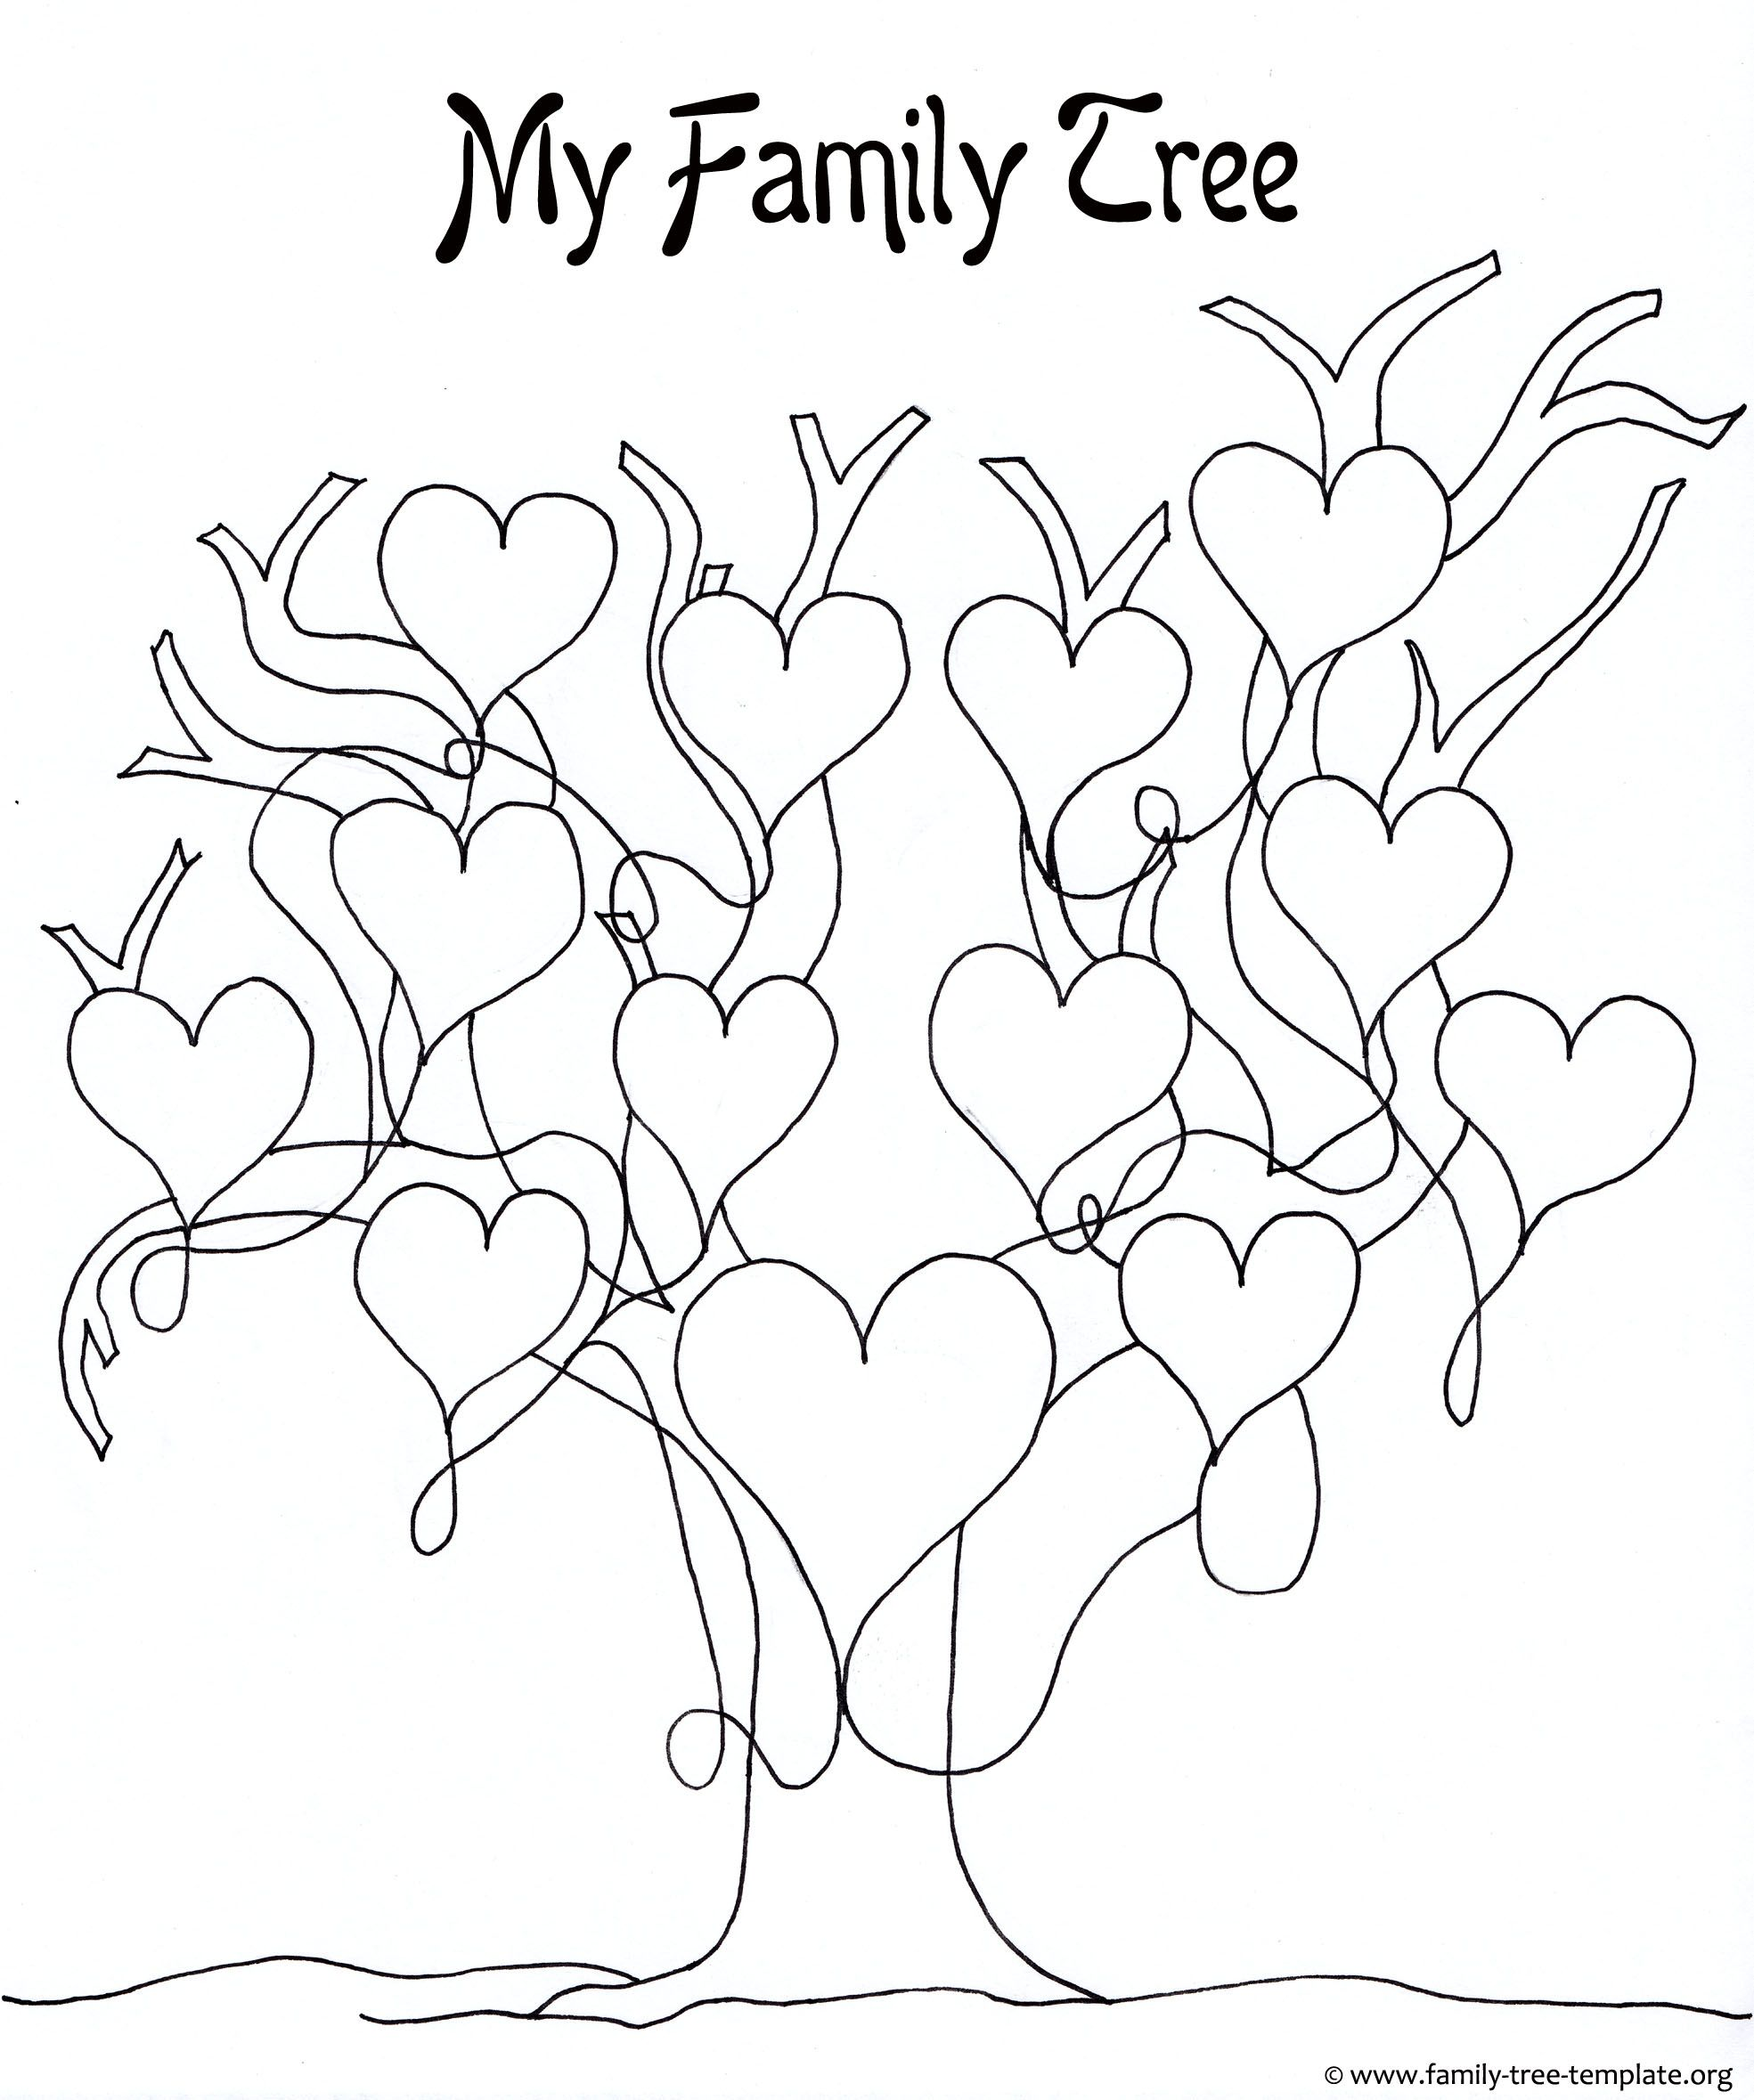 Printable Family Tree For Girls To Color And Have Fun With